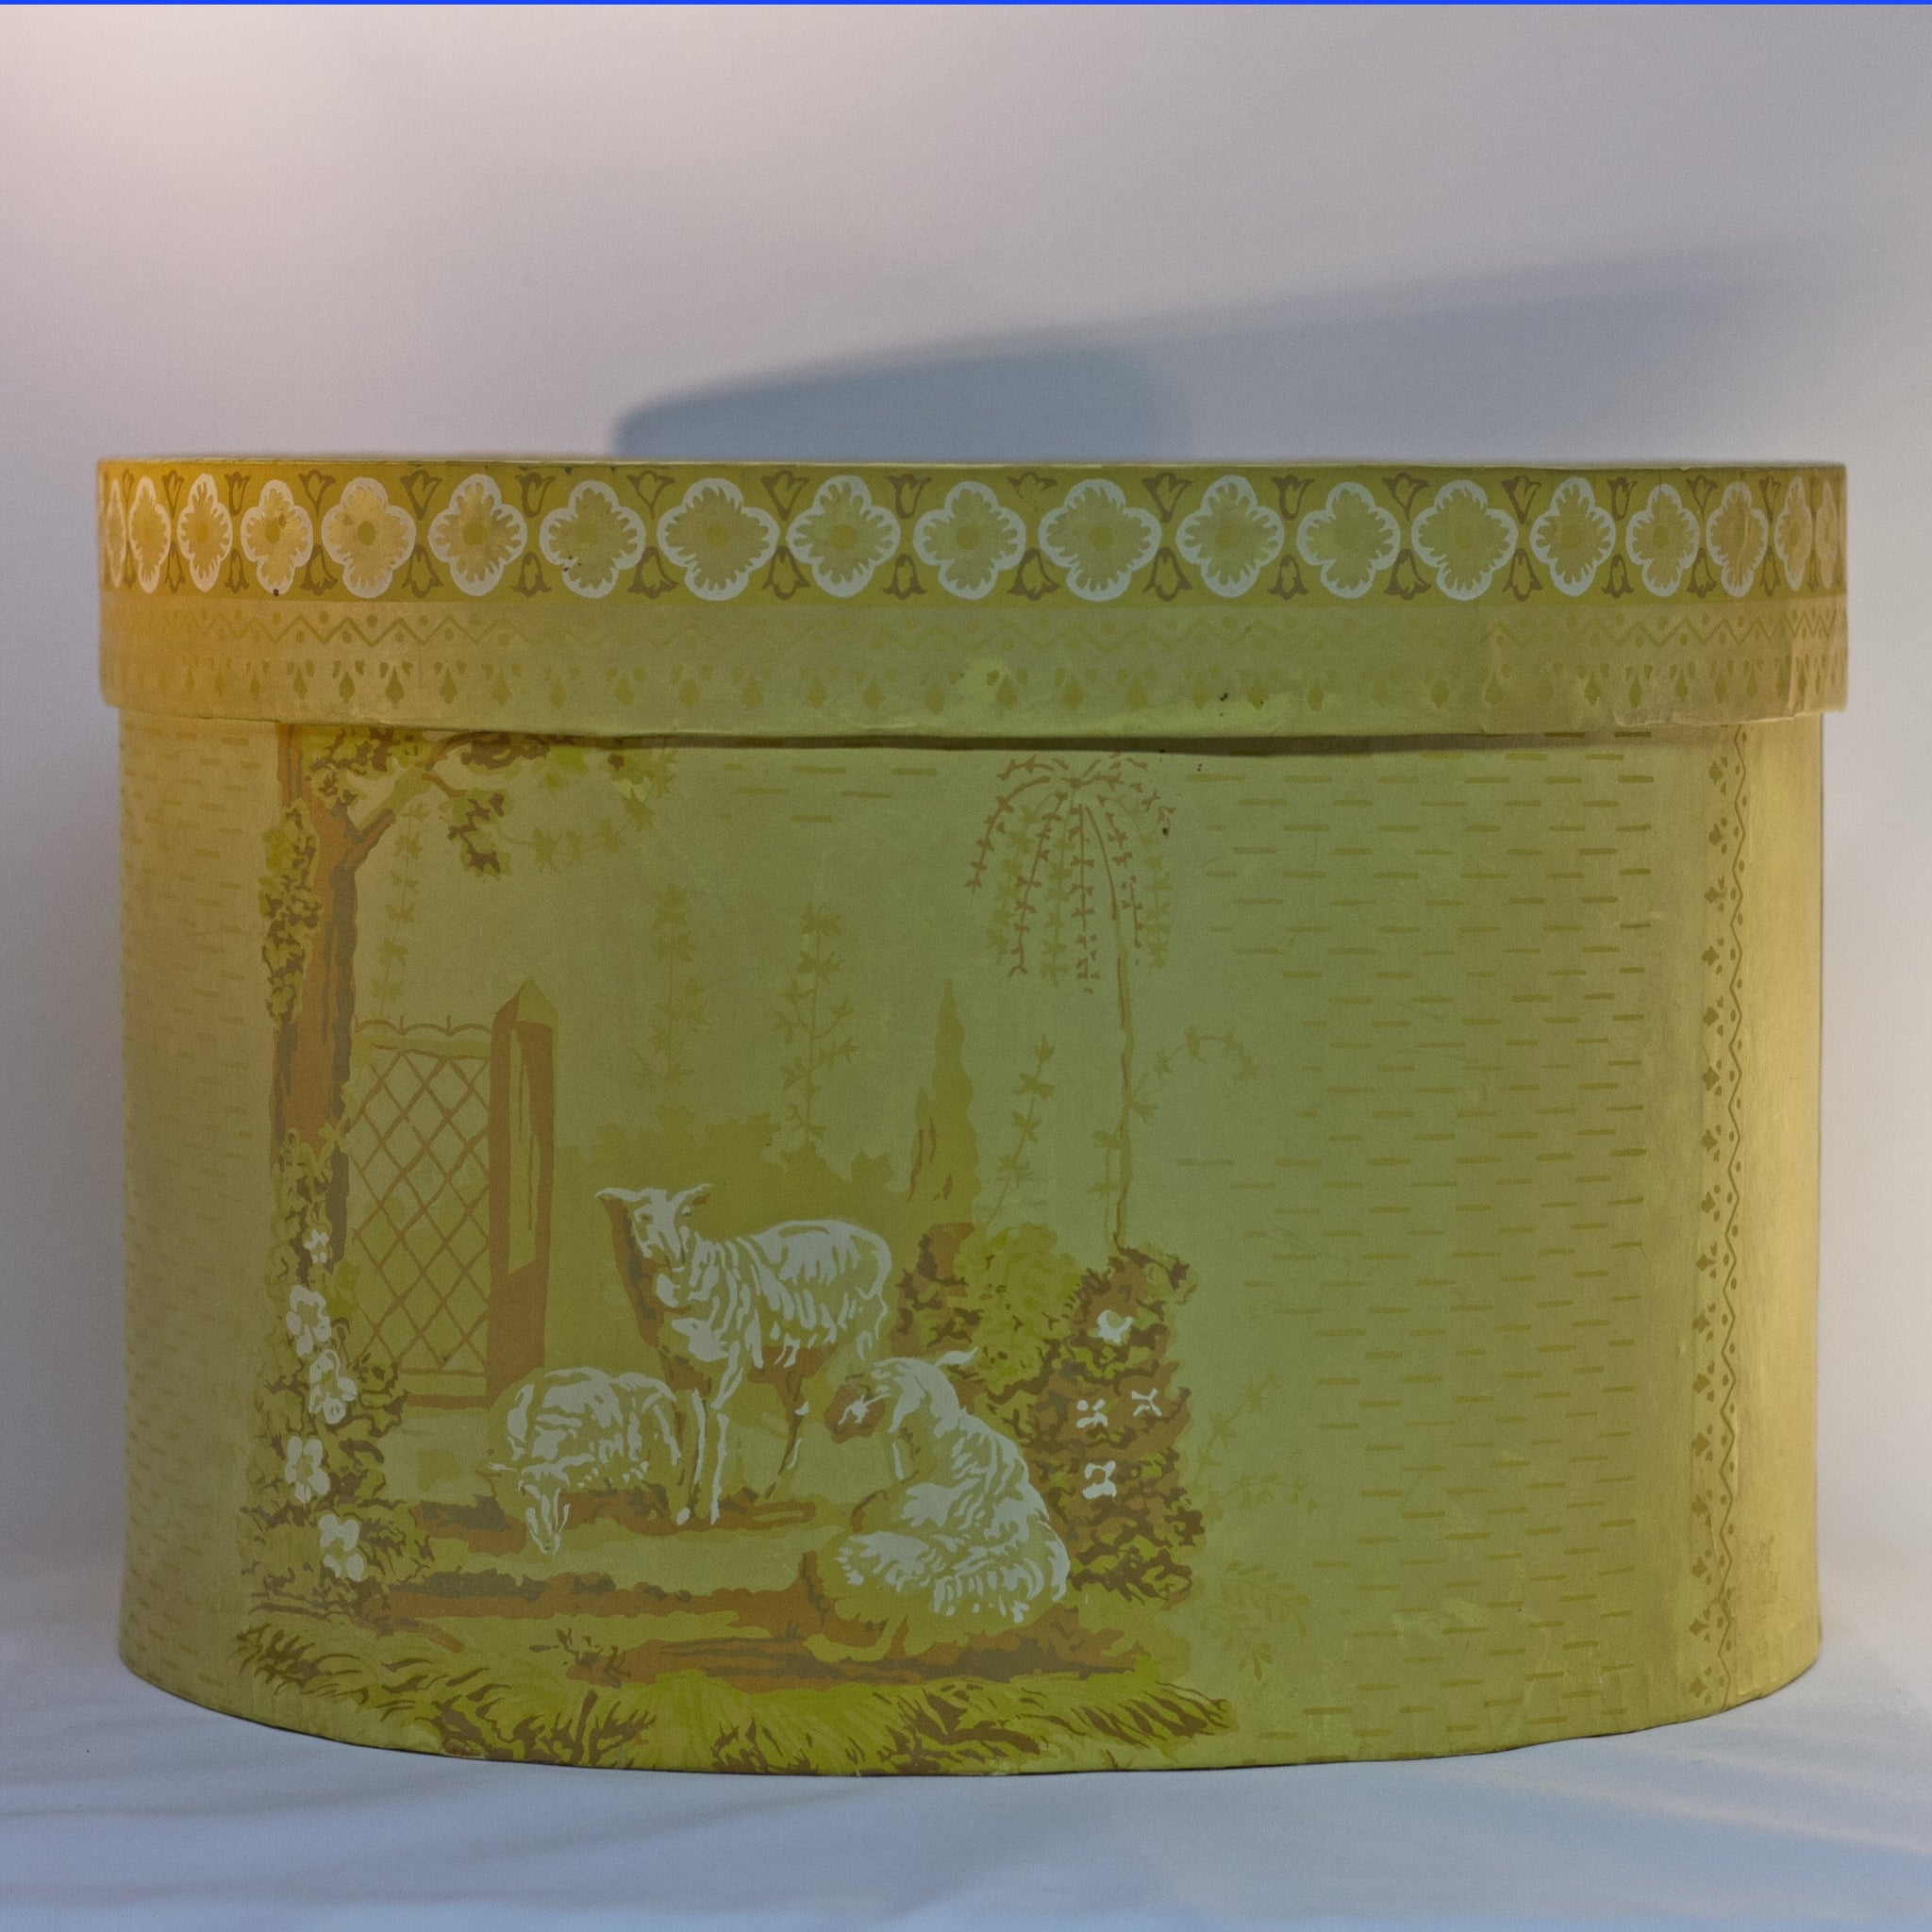 "Reproduction of a ""BRIDE'S BOX"" made from slightly oval shaped large hat box covered in vintage yellow wallpaper featuring lambs and a Colonial girl. Inside and bottom papered with pages from the Maine Antique Digest, September 1977. Measures about 10"" high by 15"" in length by 13"" wide."